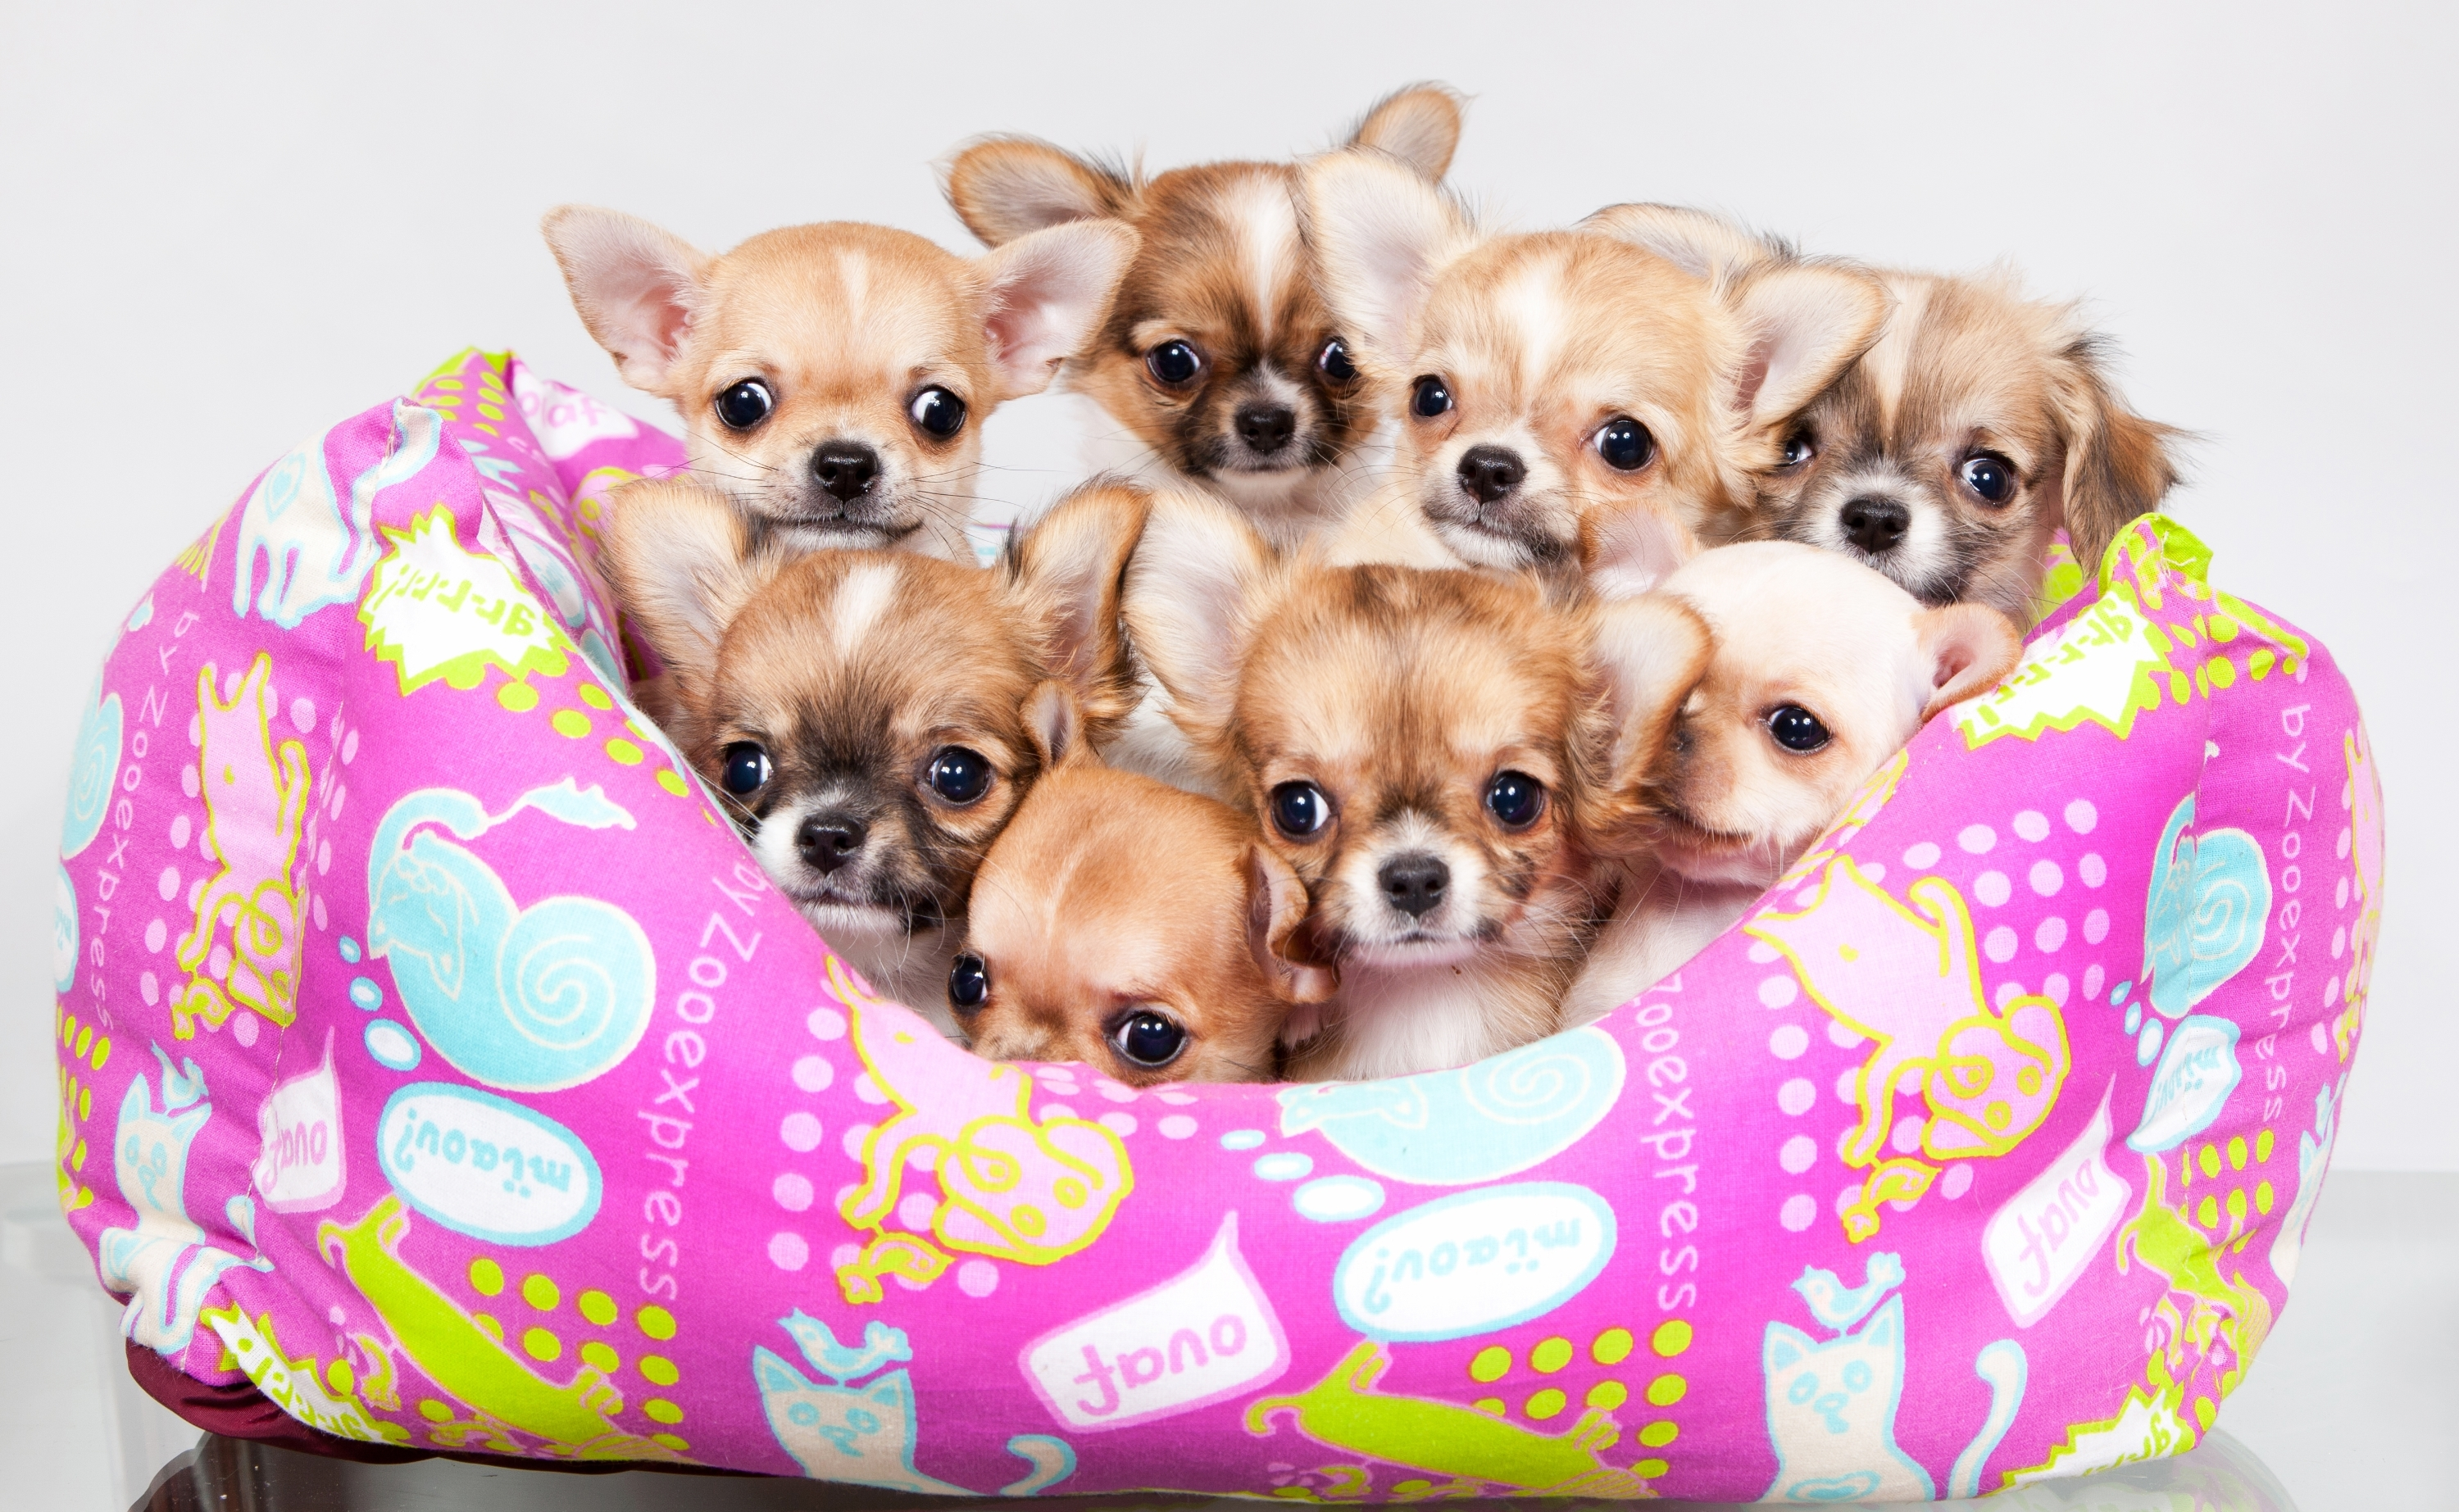 Lots of pictures of cute puppies Shorkie Puppies for sale USA and Canda - m